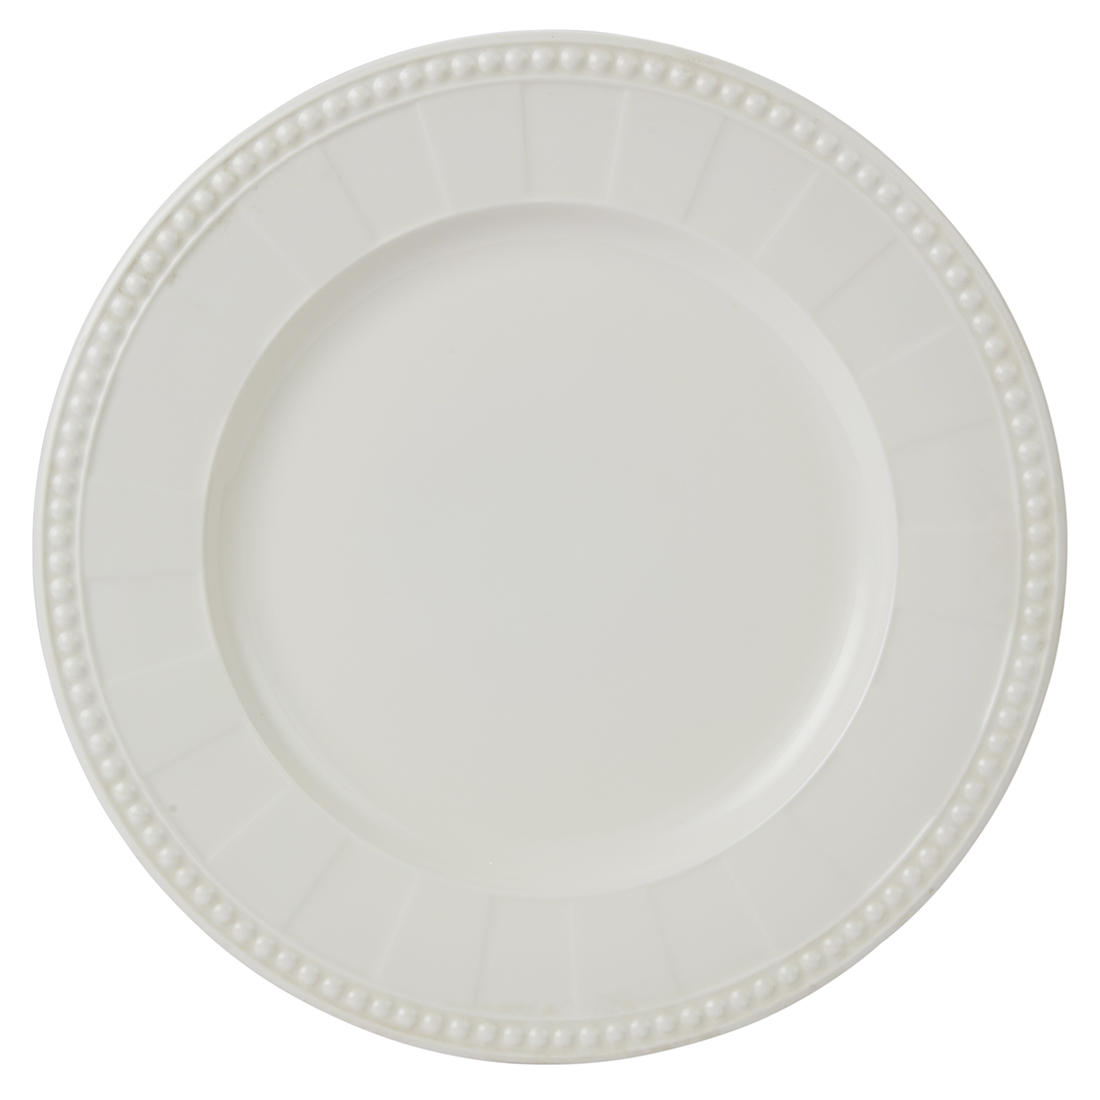 Florence Dinner Plate 27 Cm Ceramic Plates in White With Gold Line Colour by Living Essence